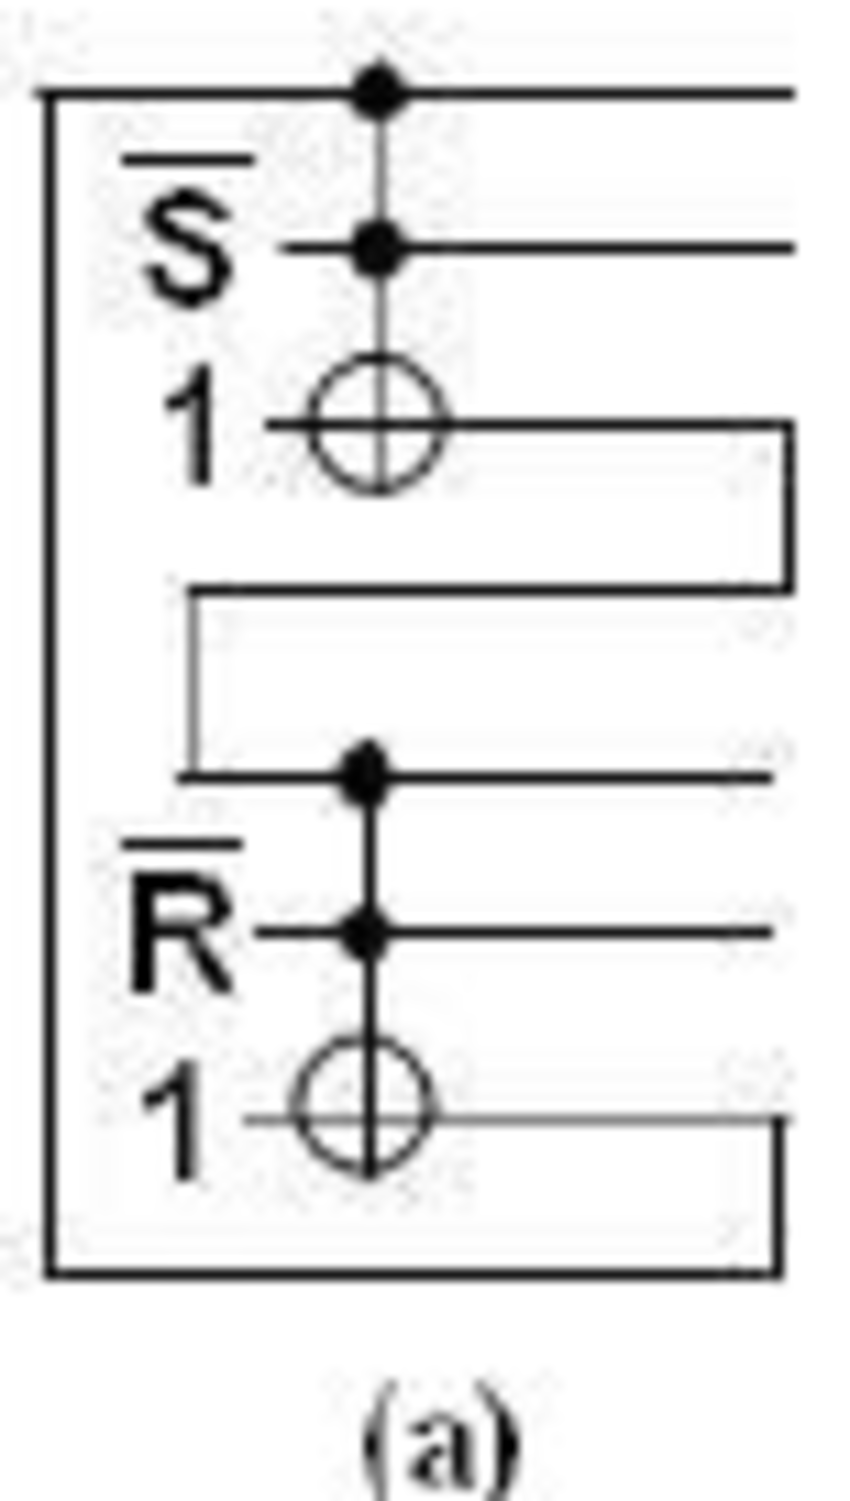 hight resolution of circuits of a rice sr latch and b rice sr latch with